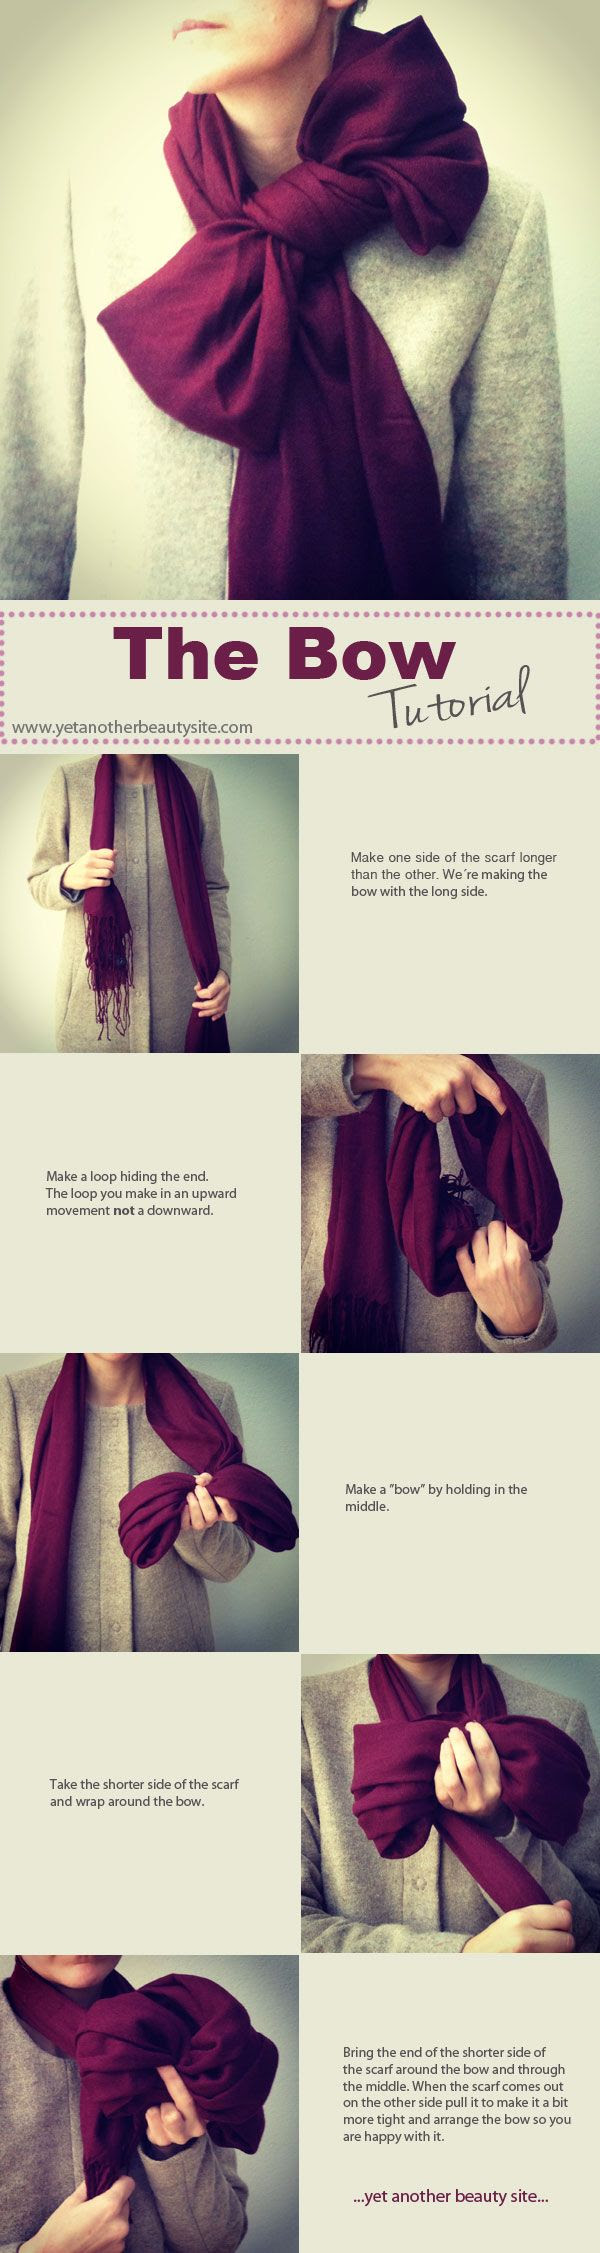 Bow scarf. could be good. could be very very bad.